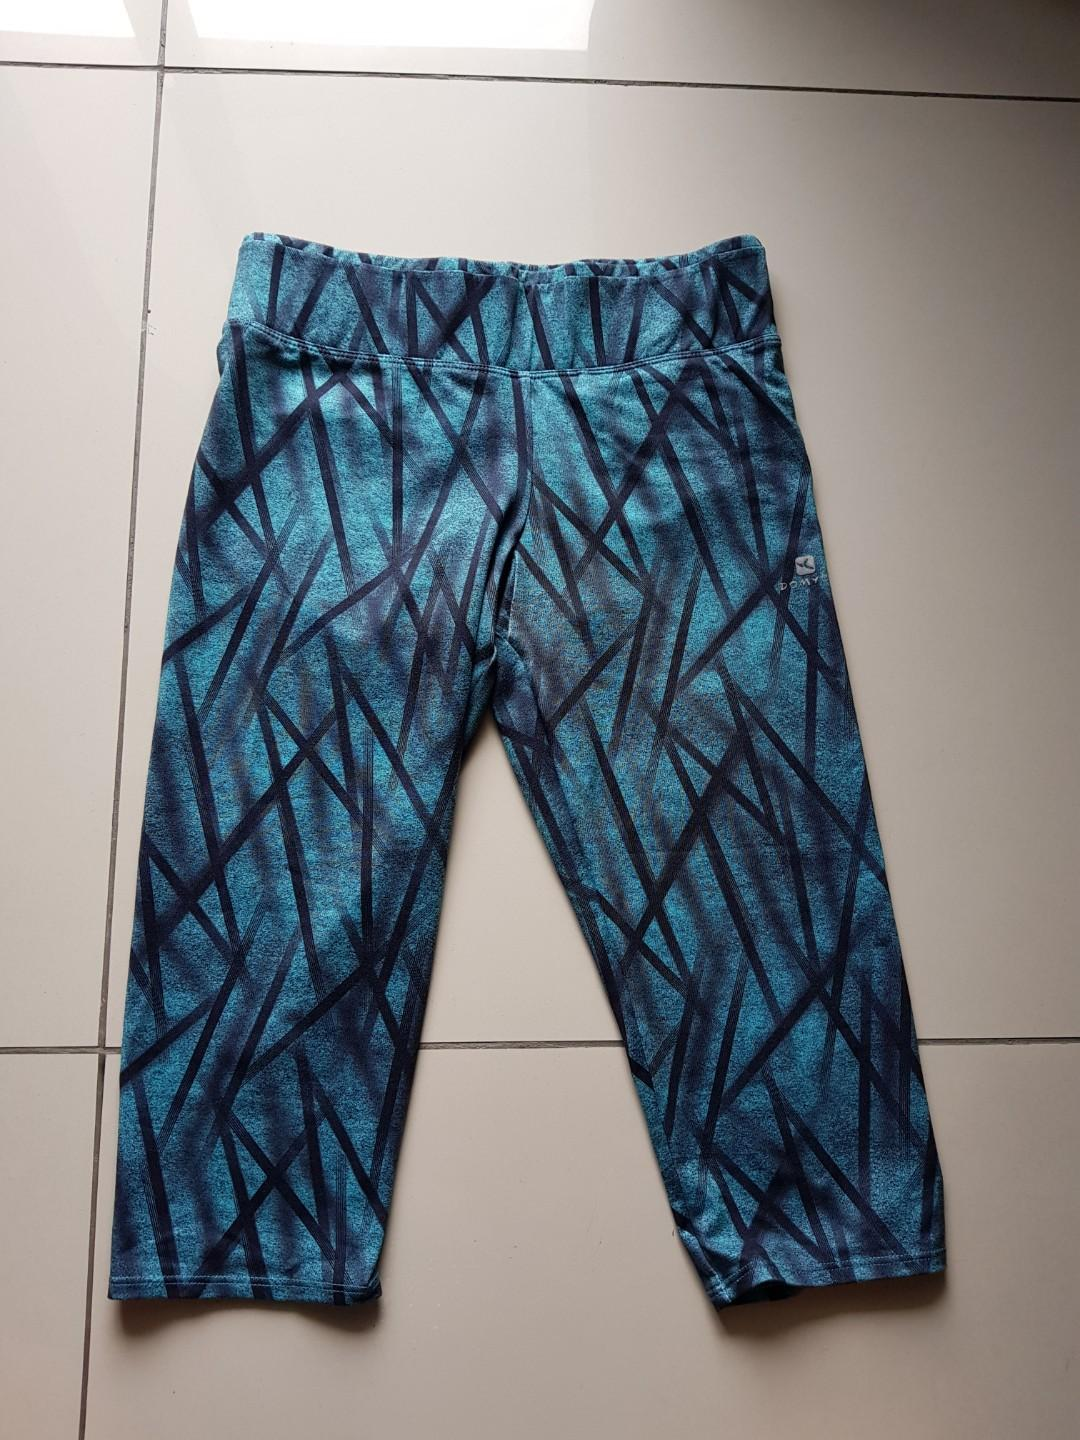 Decathlon 3/4 Gym / Yoga pants / Leggings